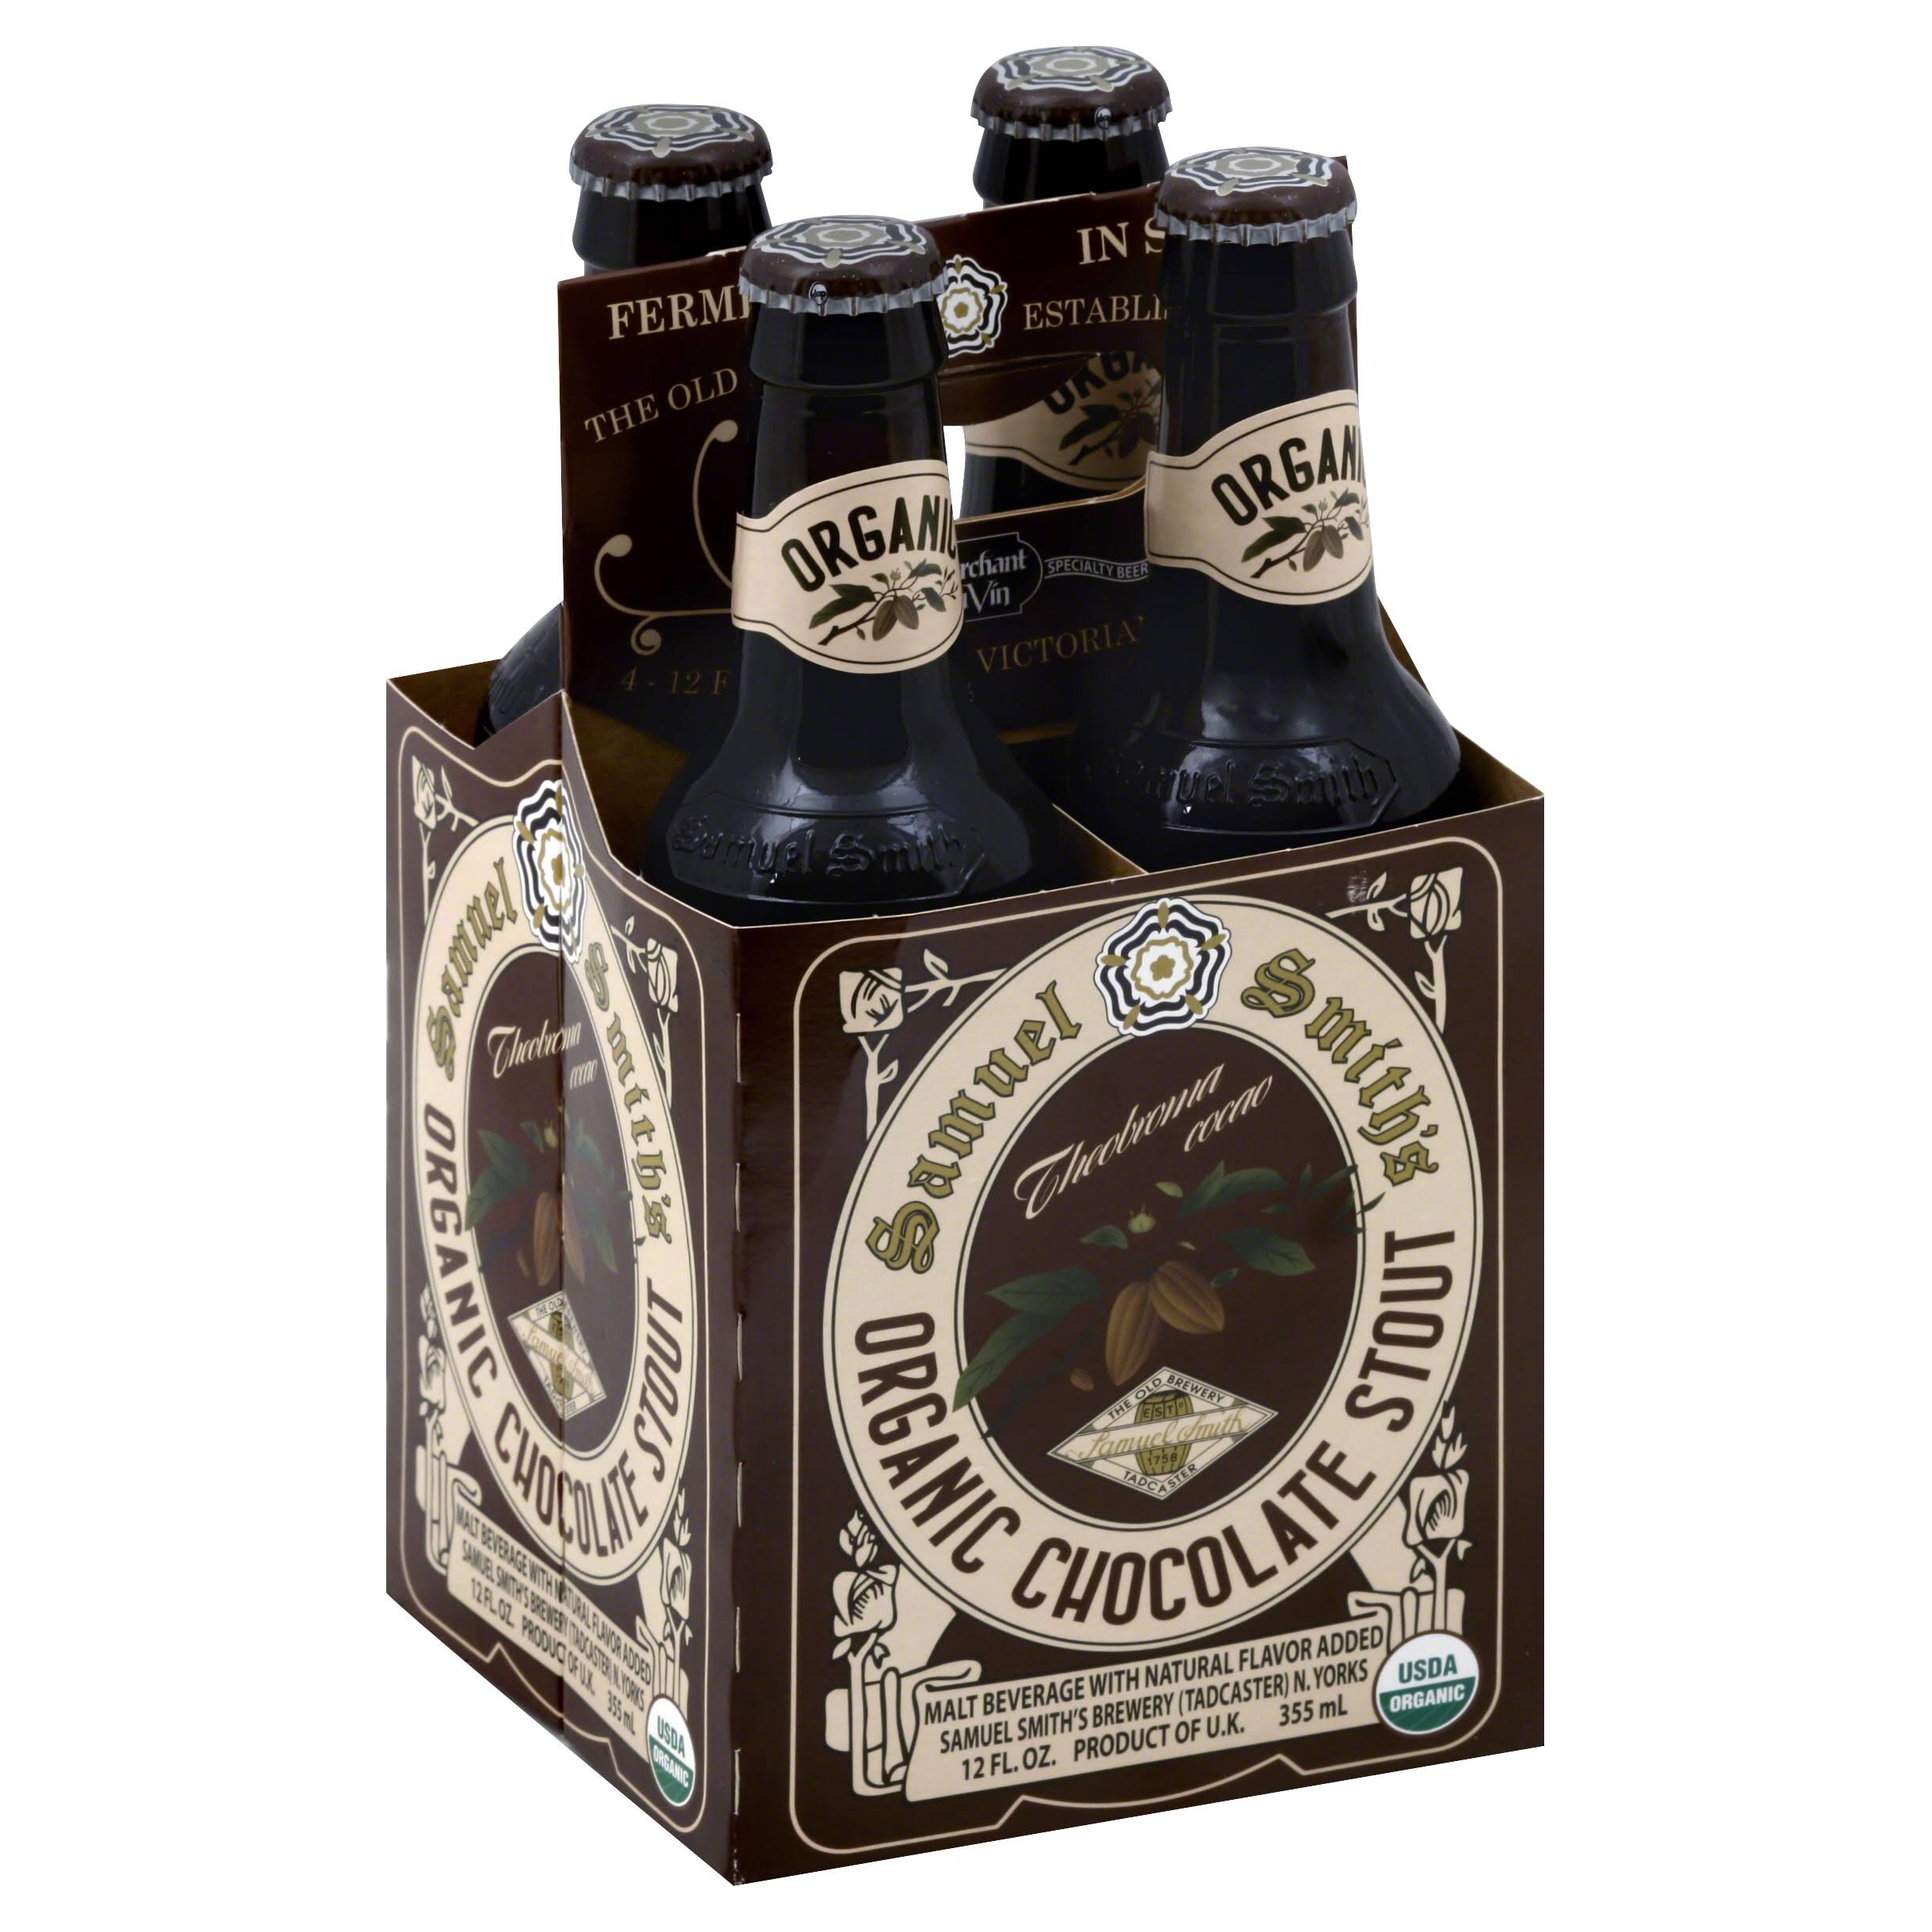 Samuel Smith's Organic Chocolate Stout - x4